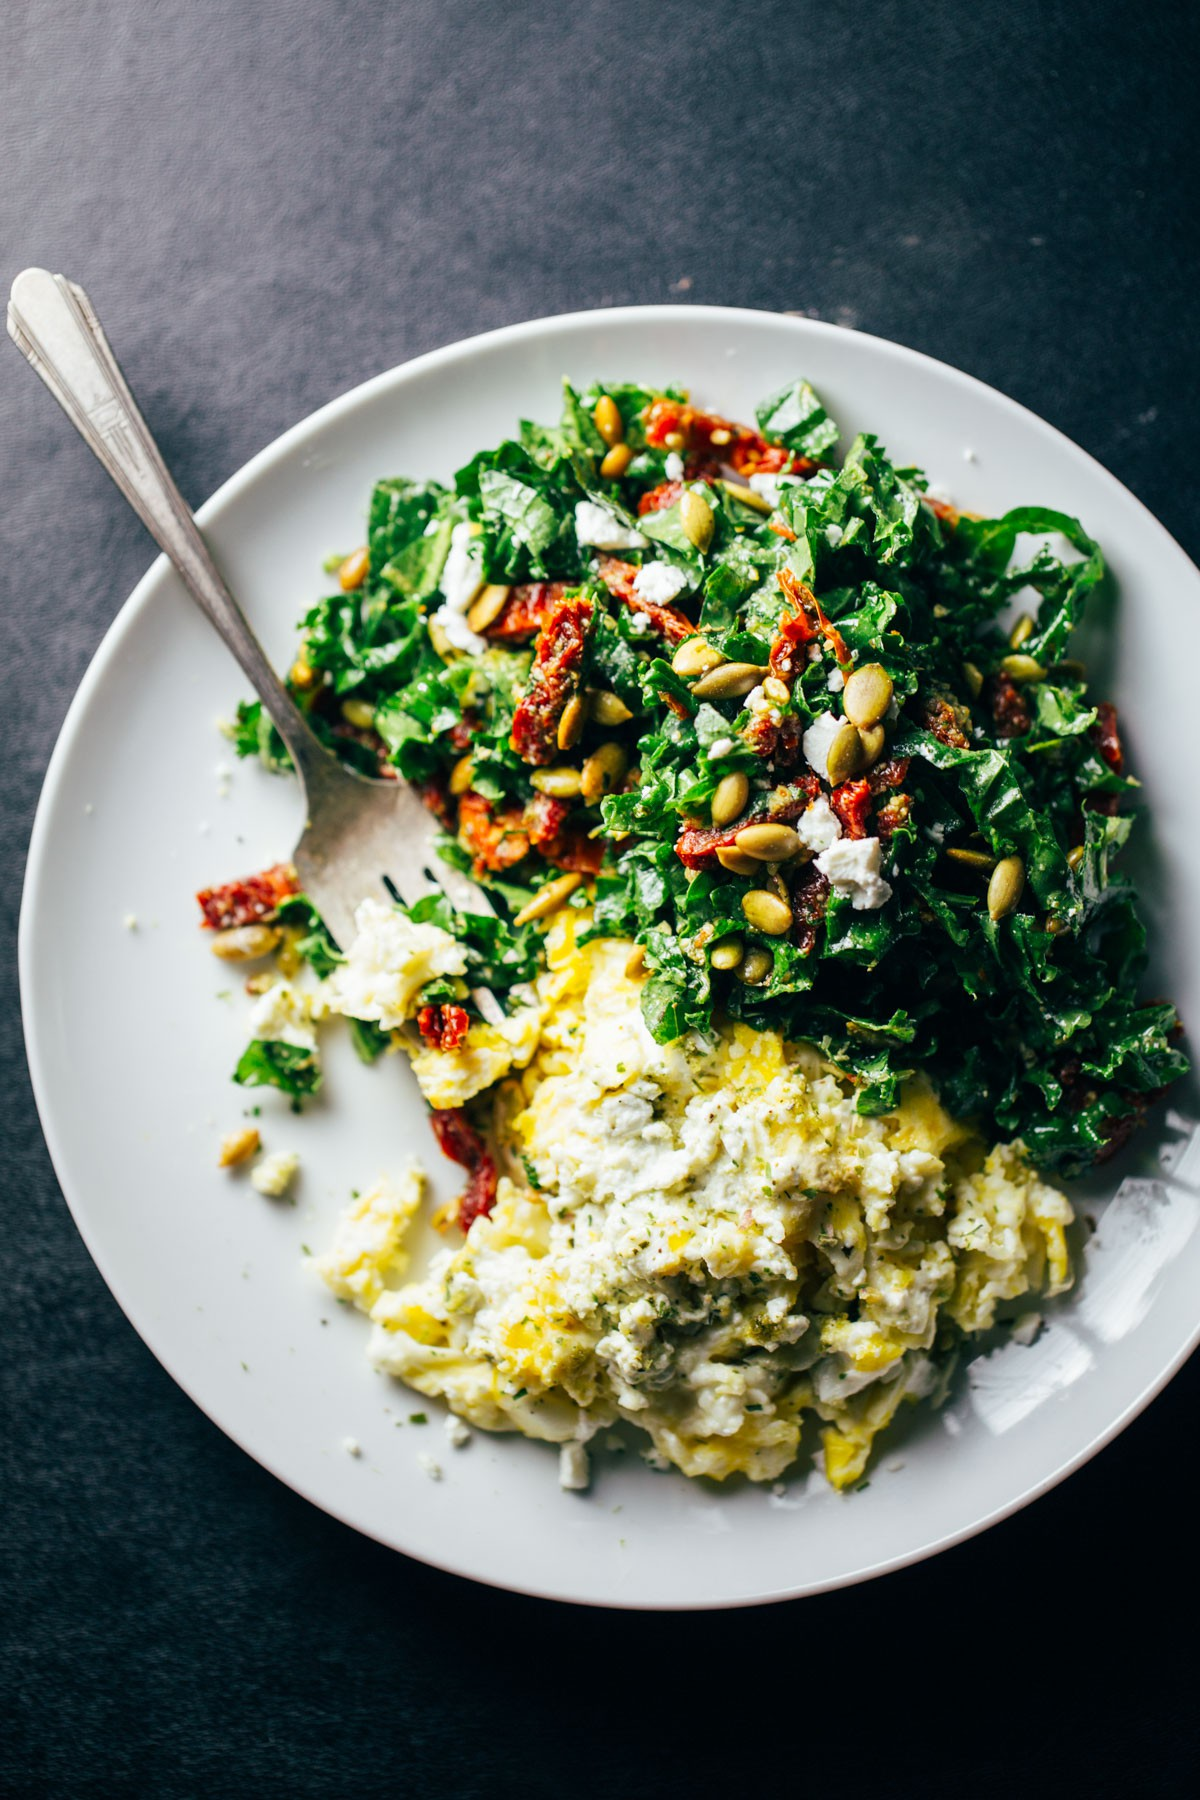 goat-cheese-scrambled-eggs-10.jpg